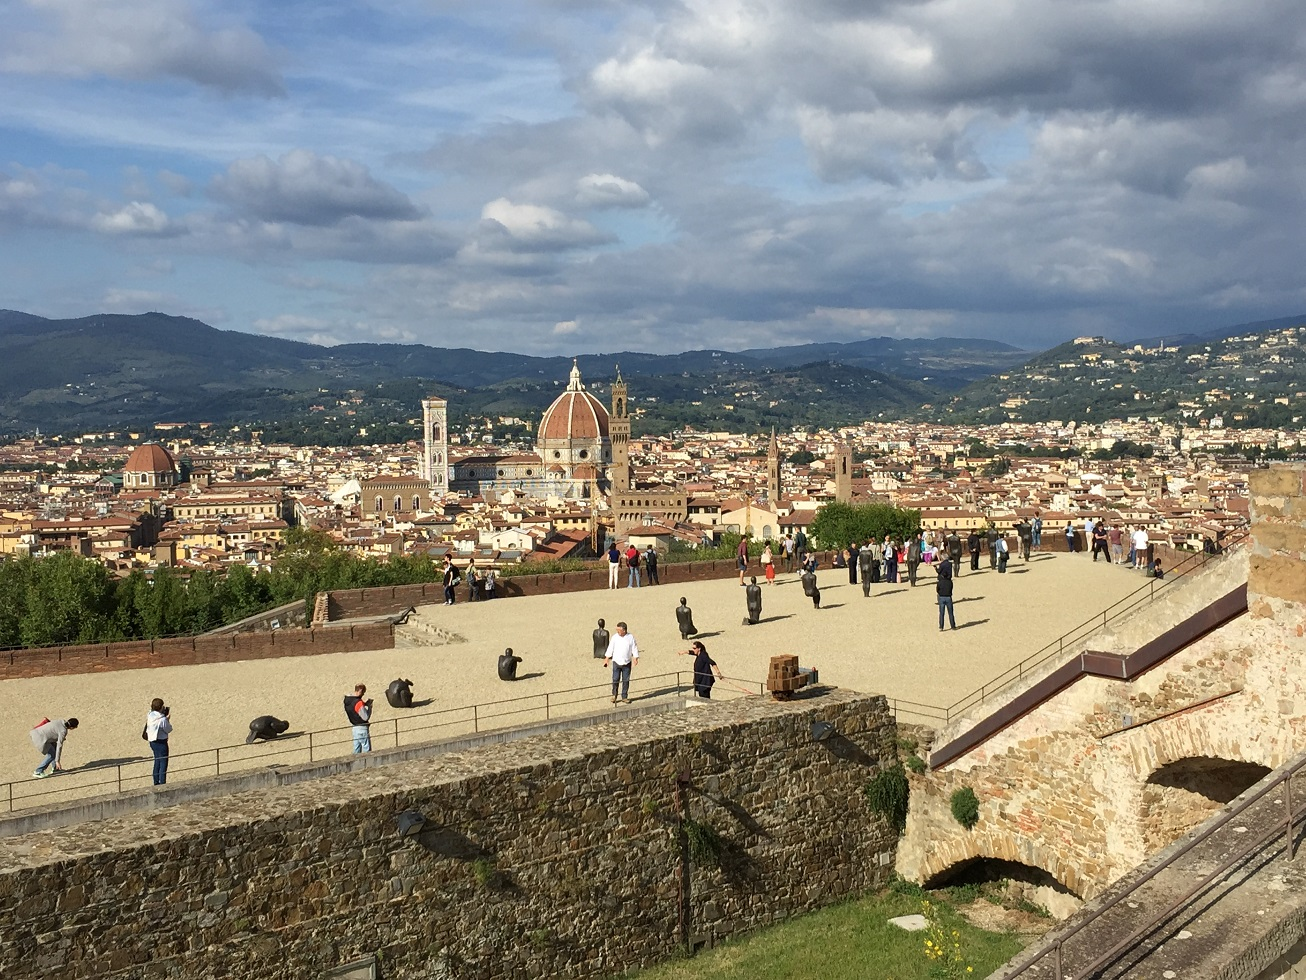 JCU students at Forte di Belvedere in Florence, JCU students in Pompeii, jcu student life, jcu weekend trips, study abroad in Rome, Student-Friendly Travel Tips to Try While You Study Abroad, travel tips for students